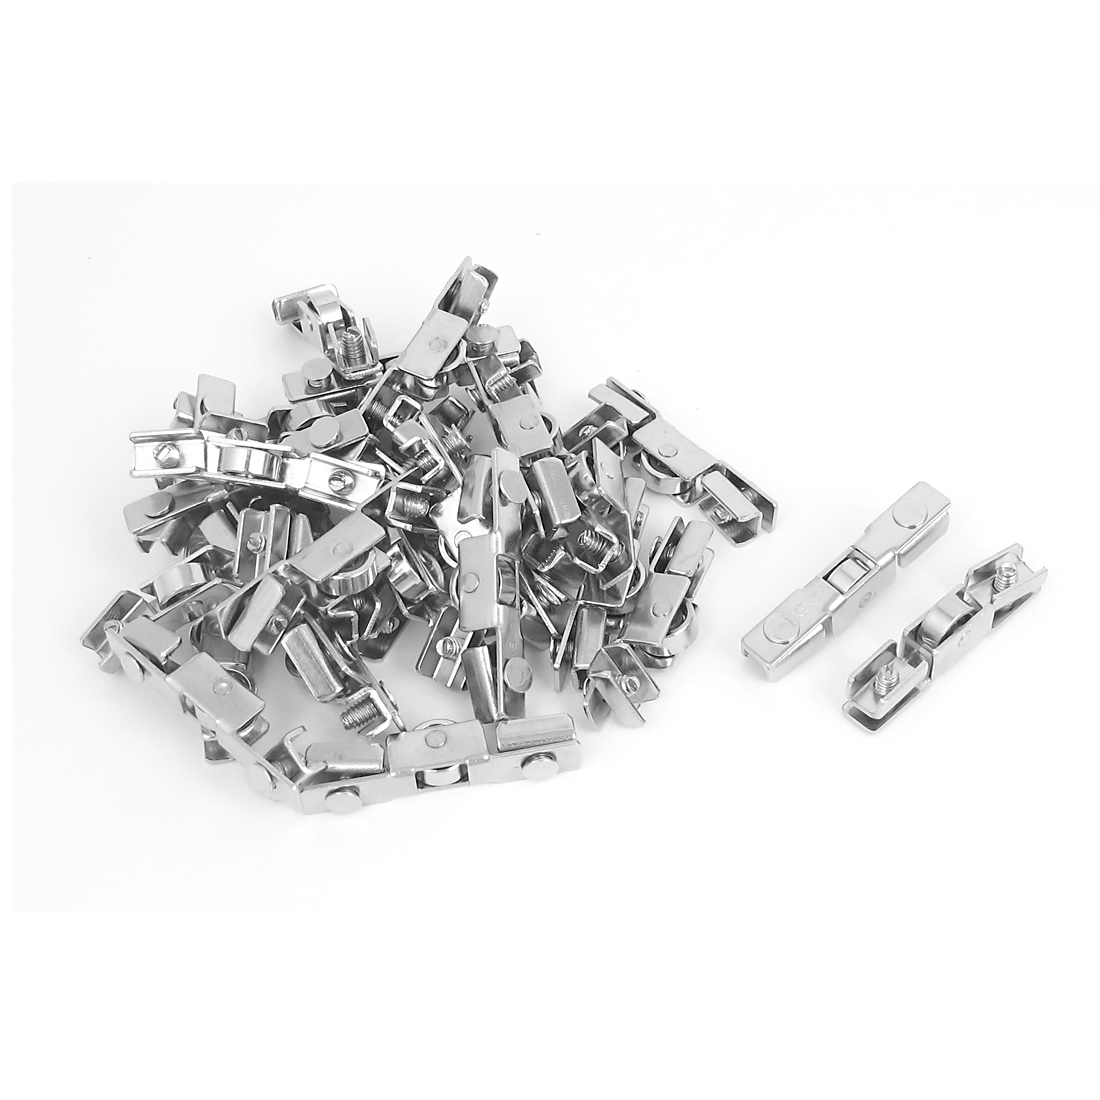 43mm Length Adjustable Metal Sliding Door Single Roller Wheel Silver Tone 30pcs